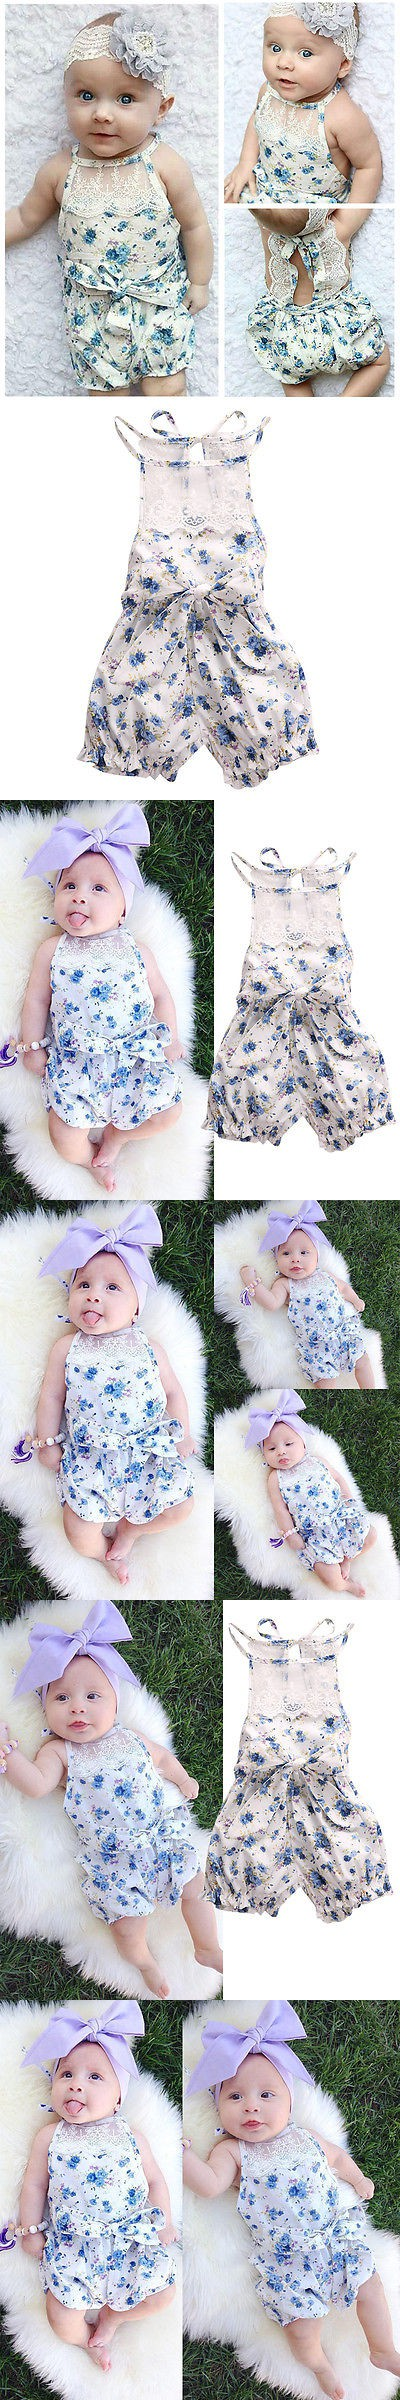 9b9e3bffb0ce 2016 New Cute Baby Girls Clothes 0-18M Infant Kids Summer Sleeveless Lace  Romper Newborn Girl Floral Baby Rompers